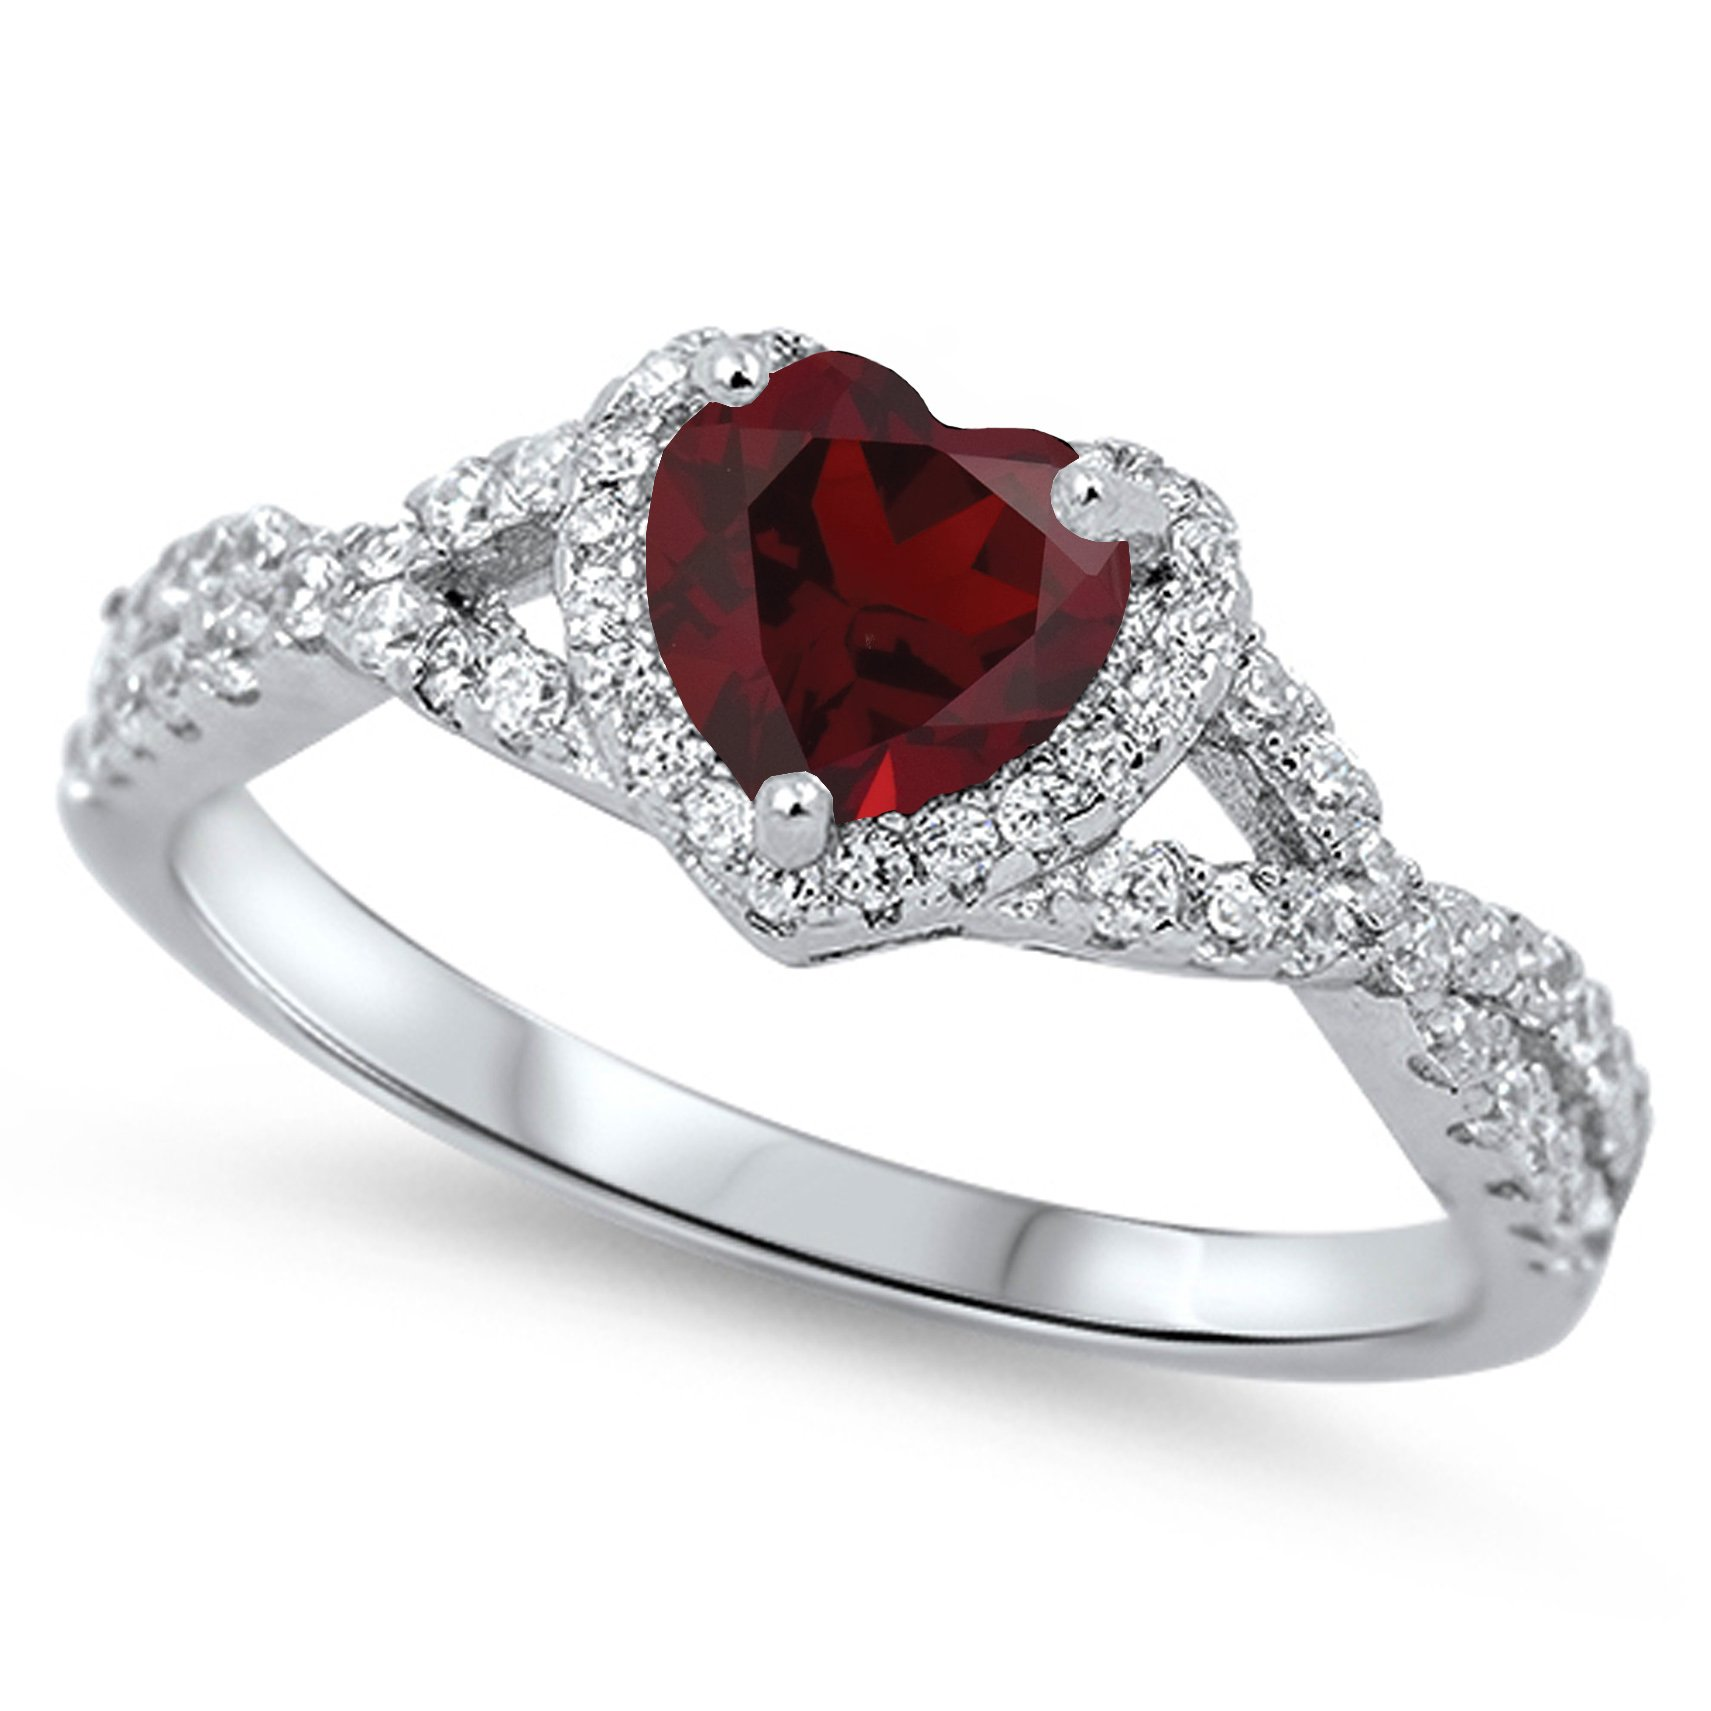 925 Sterling Silver Faceted Natural Genuine Reddish Purple Garnet Heart Halo Promise Ring Size 9 by Sac Silver